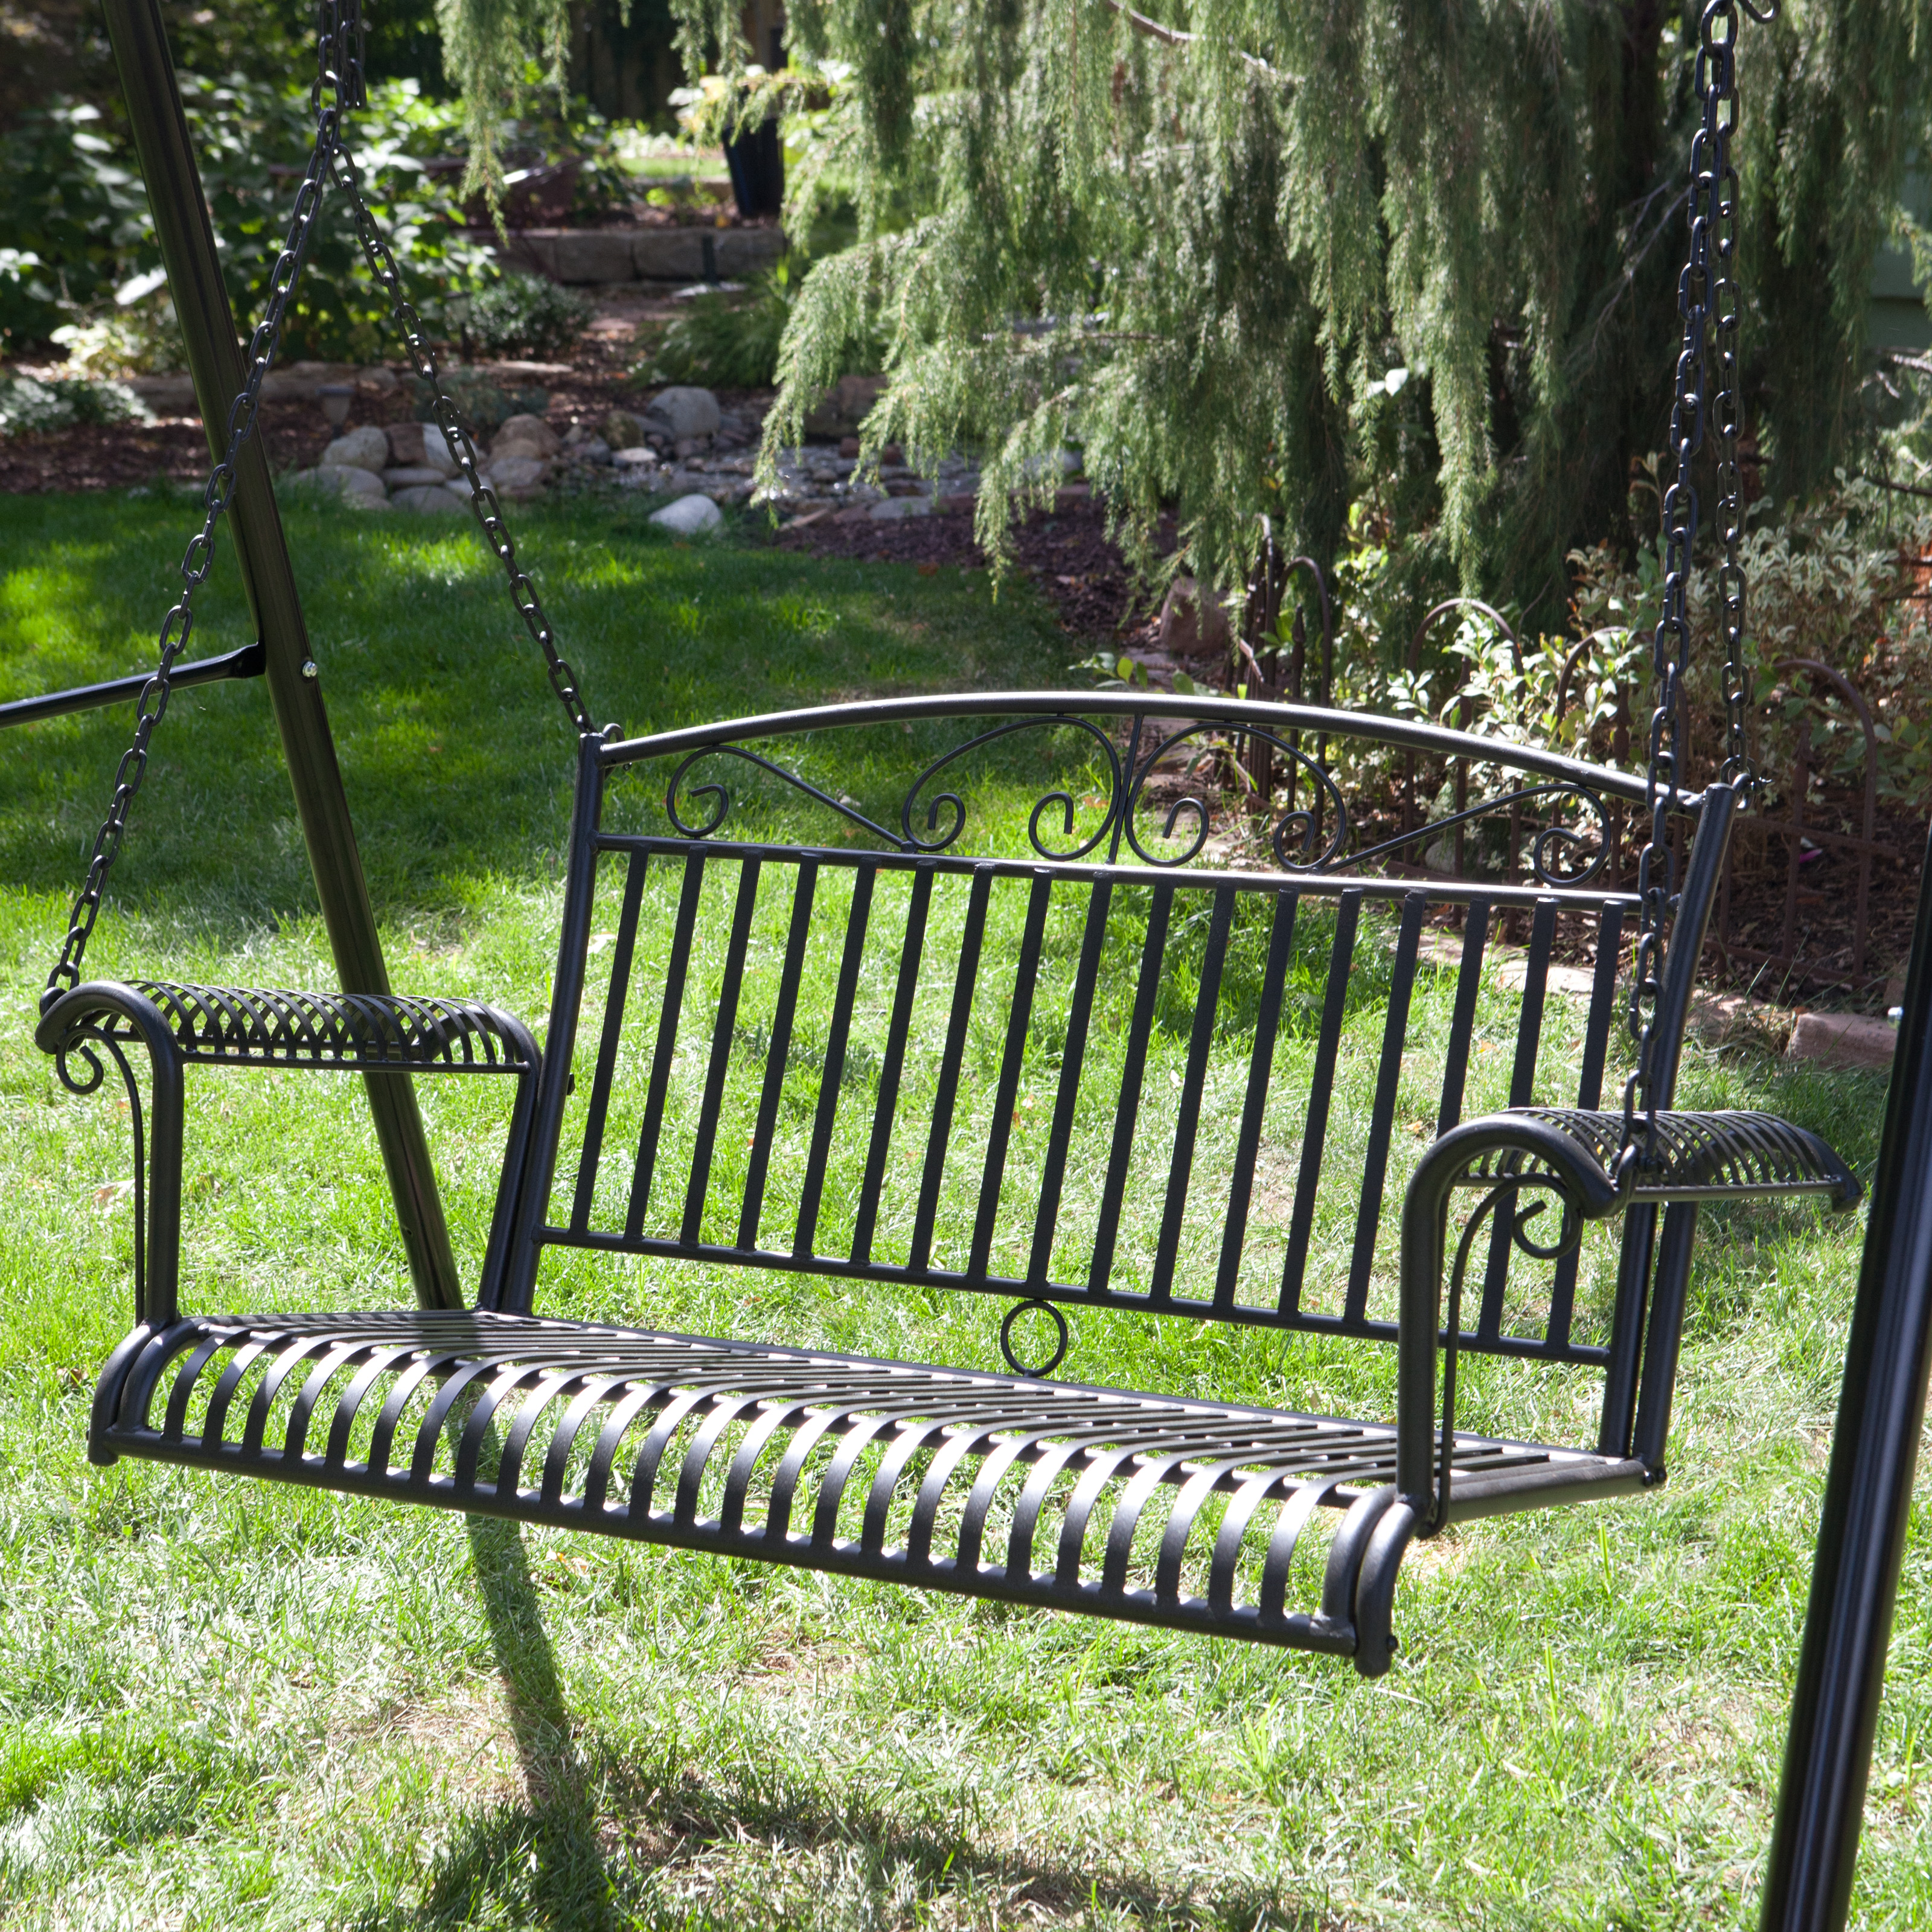 Backyard Porch Swing :  ft Wrought Iron Curved Back Porch Swing  Porch Swings at Hayneedle